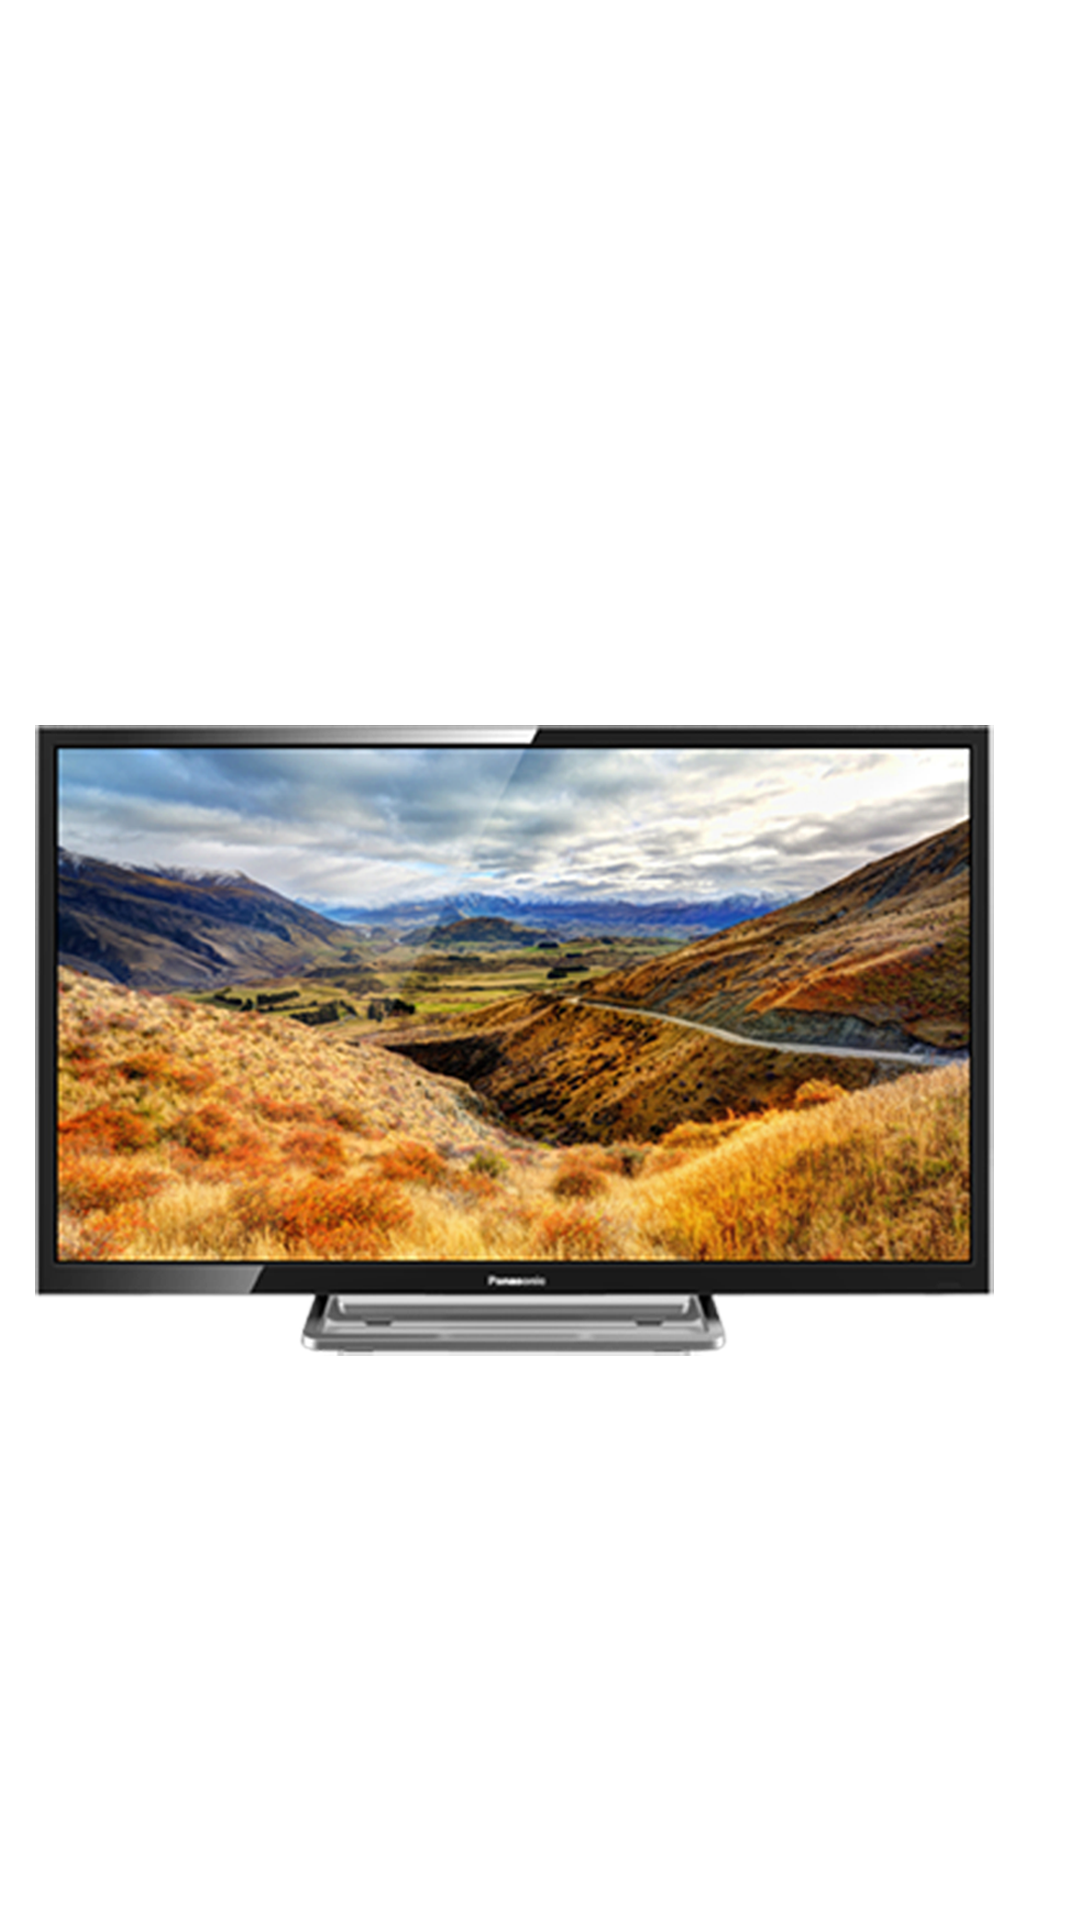 Panasonic TH-32C460DX 32 Inch Full HD LED TV